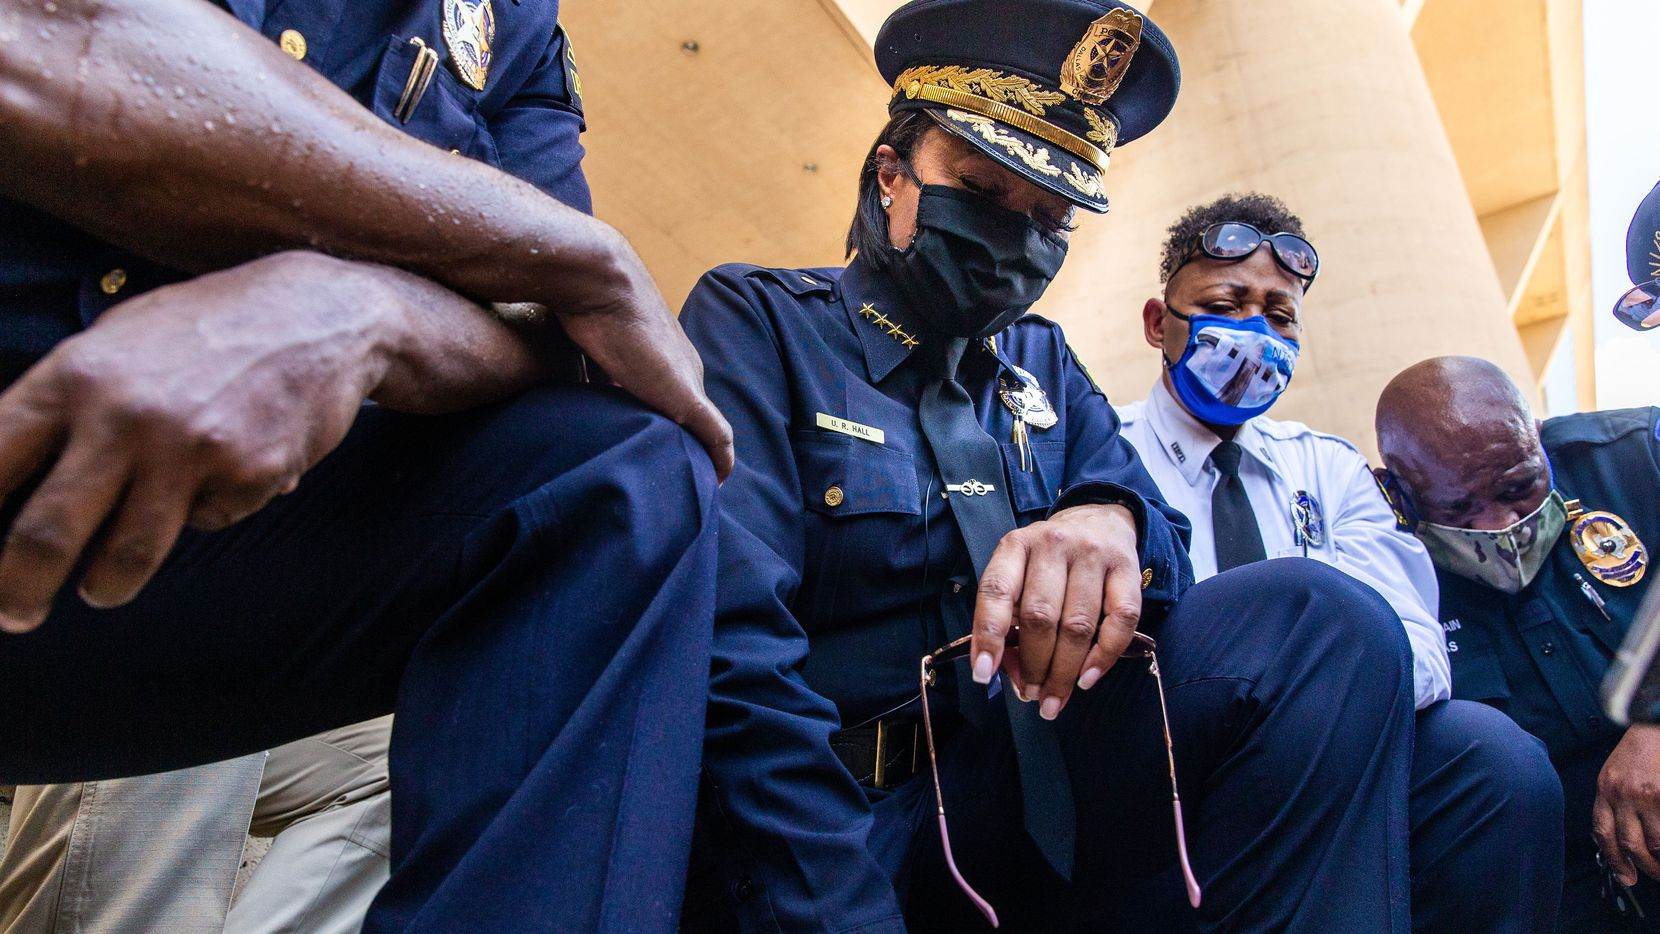 Chief U. Renee Hall (center) and other officers kneel for 8 minutes and 46 seconds during the Blue for Black Lives demonstration led by Dallas Police in response to the murder of George Floyd at Dallas City Hall in Dallas on Friday, June 5, 2020. The demonstration took place on the eighth day of organized protests in response to the recent deaths of George Floyd in Minneapolis and Breonna Taylor in Louisville.